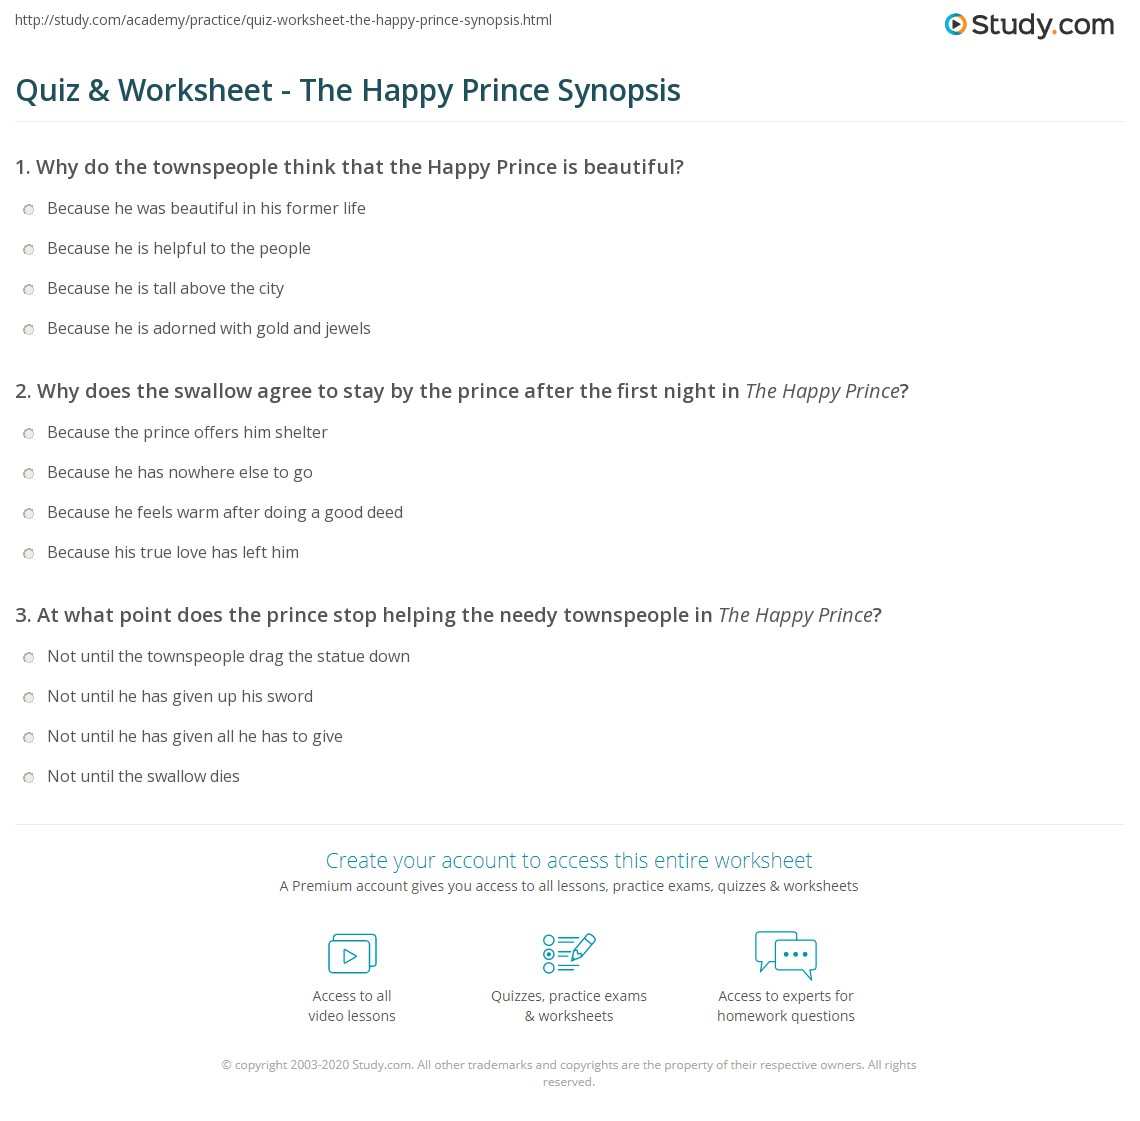 Quiz & Worksheet - The Happy Prince Synopsis | Study.com